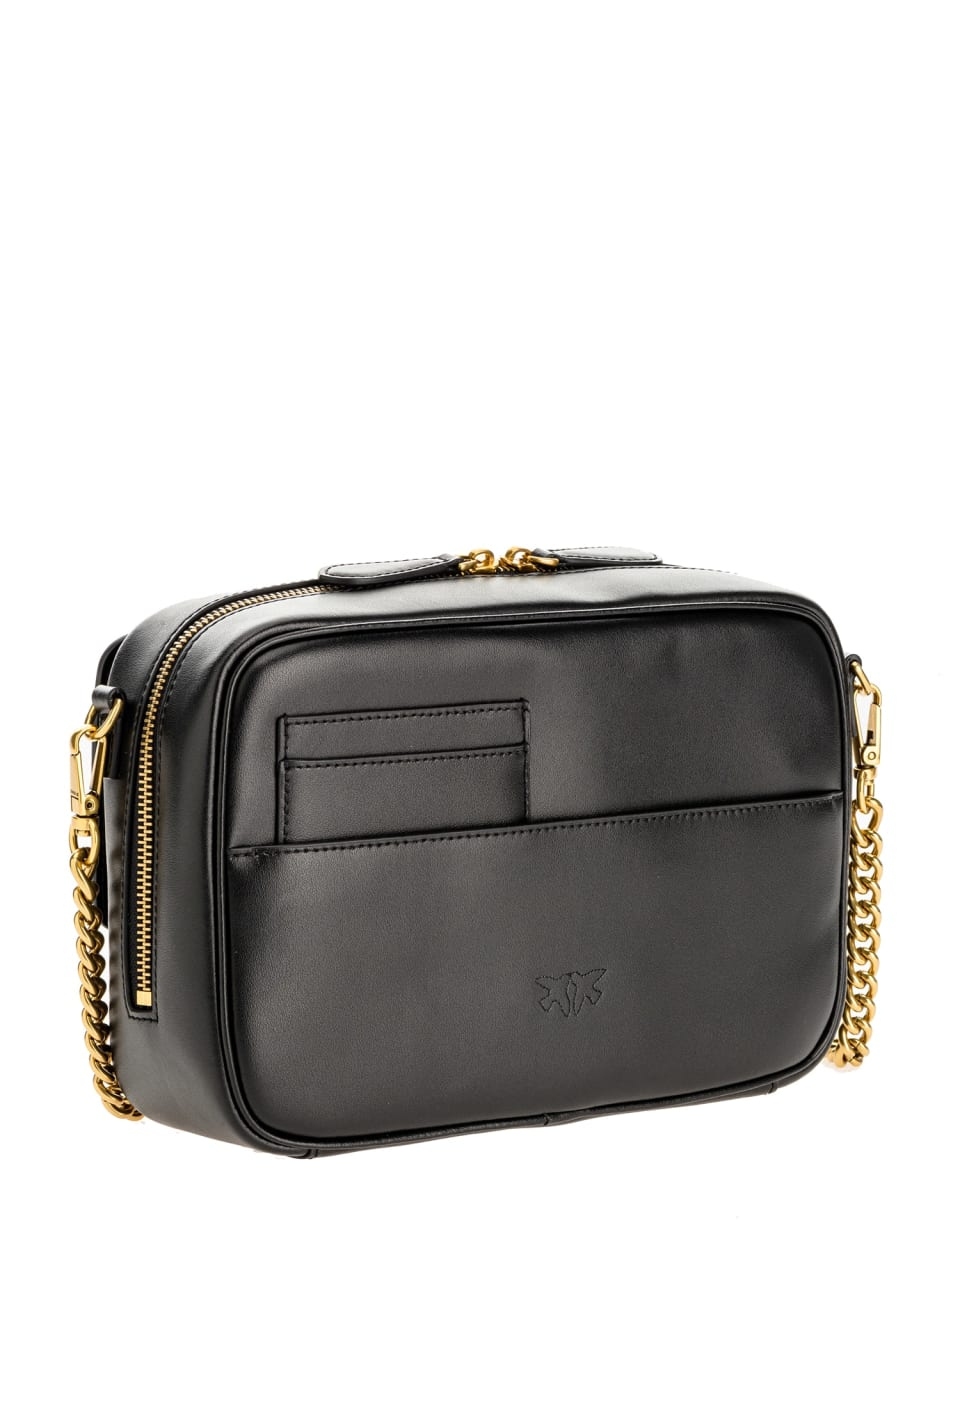 Big Square Bag Simply in leather - Pinko